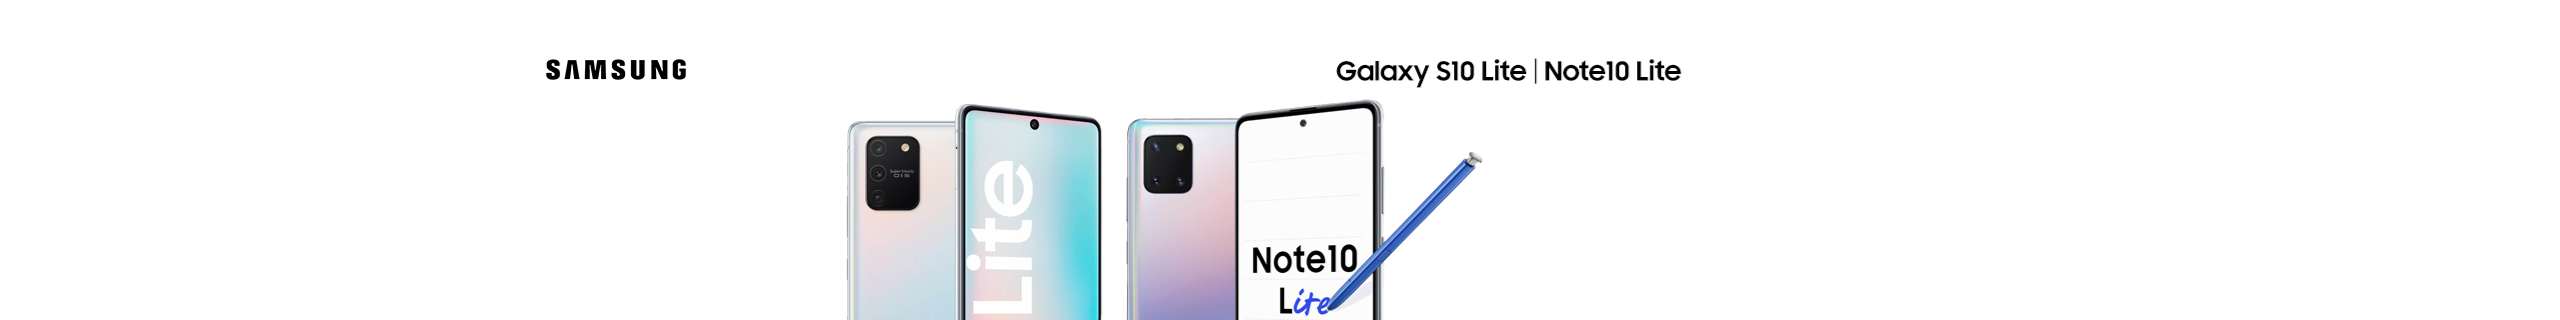 6-slider_S10-Note10Lite.png